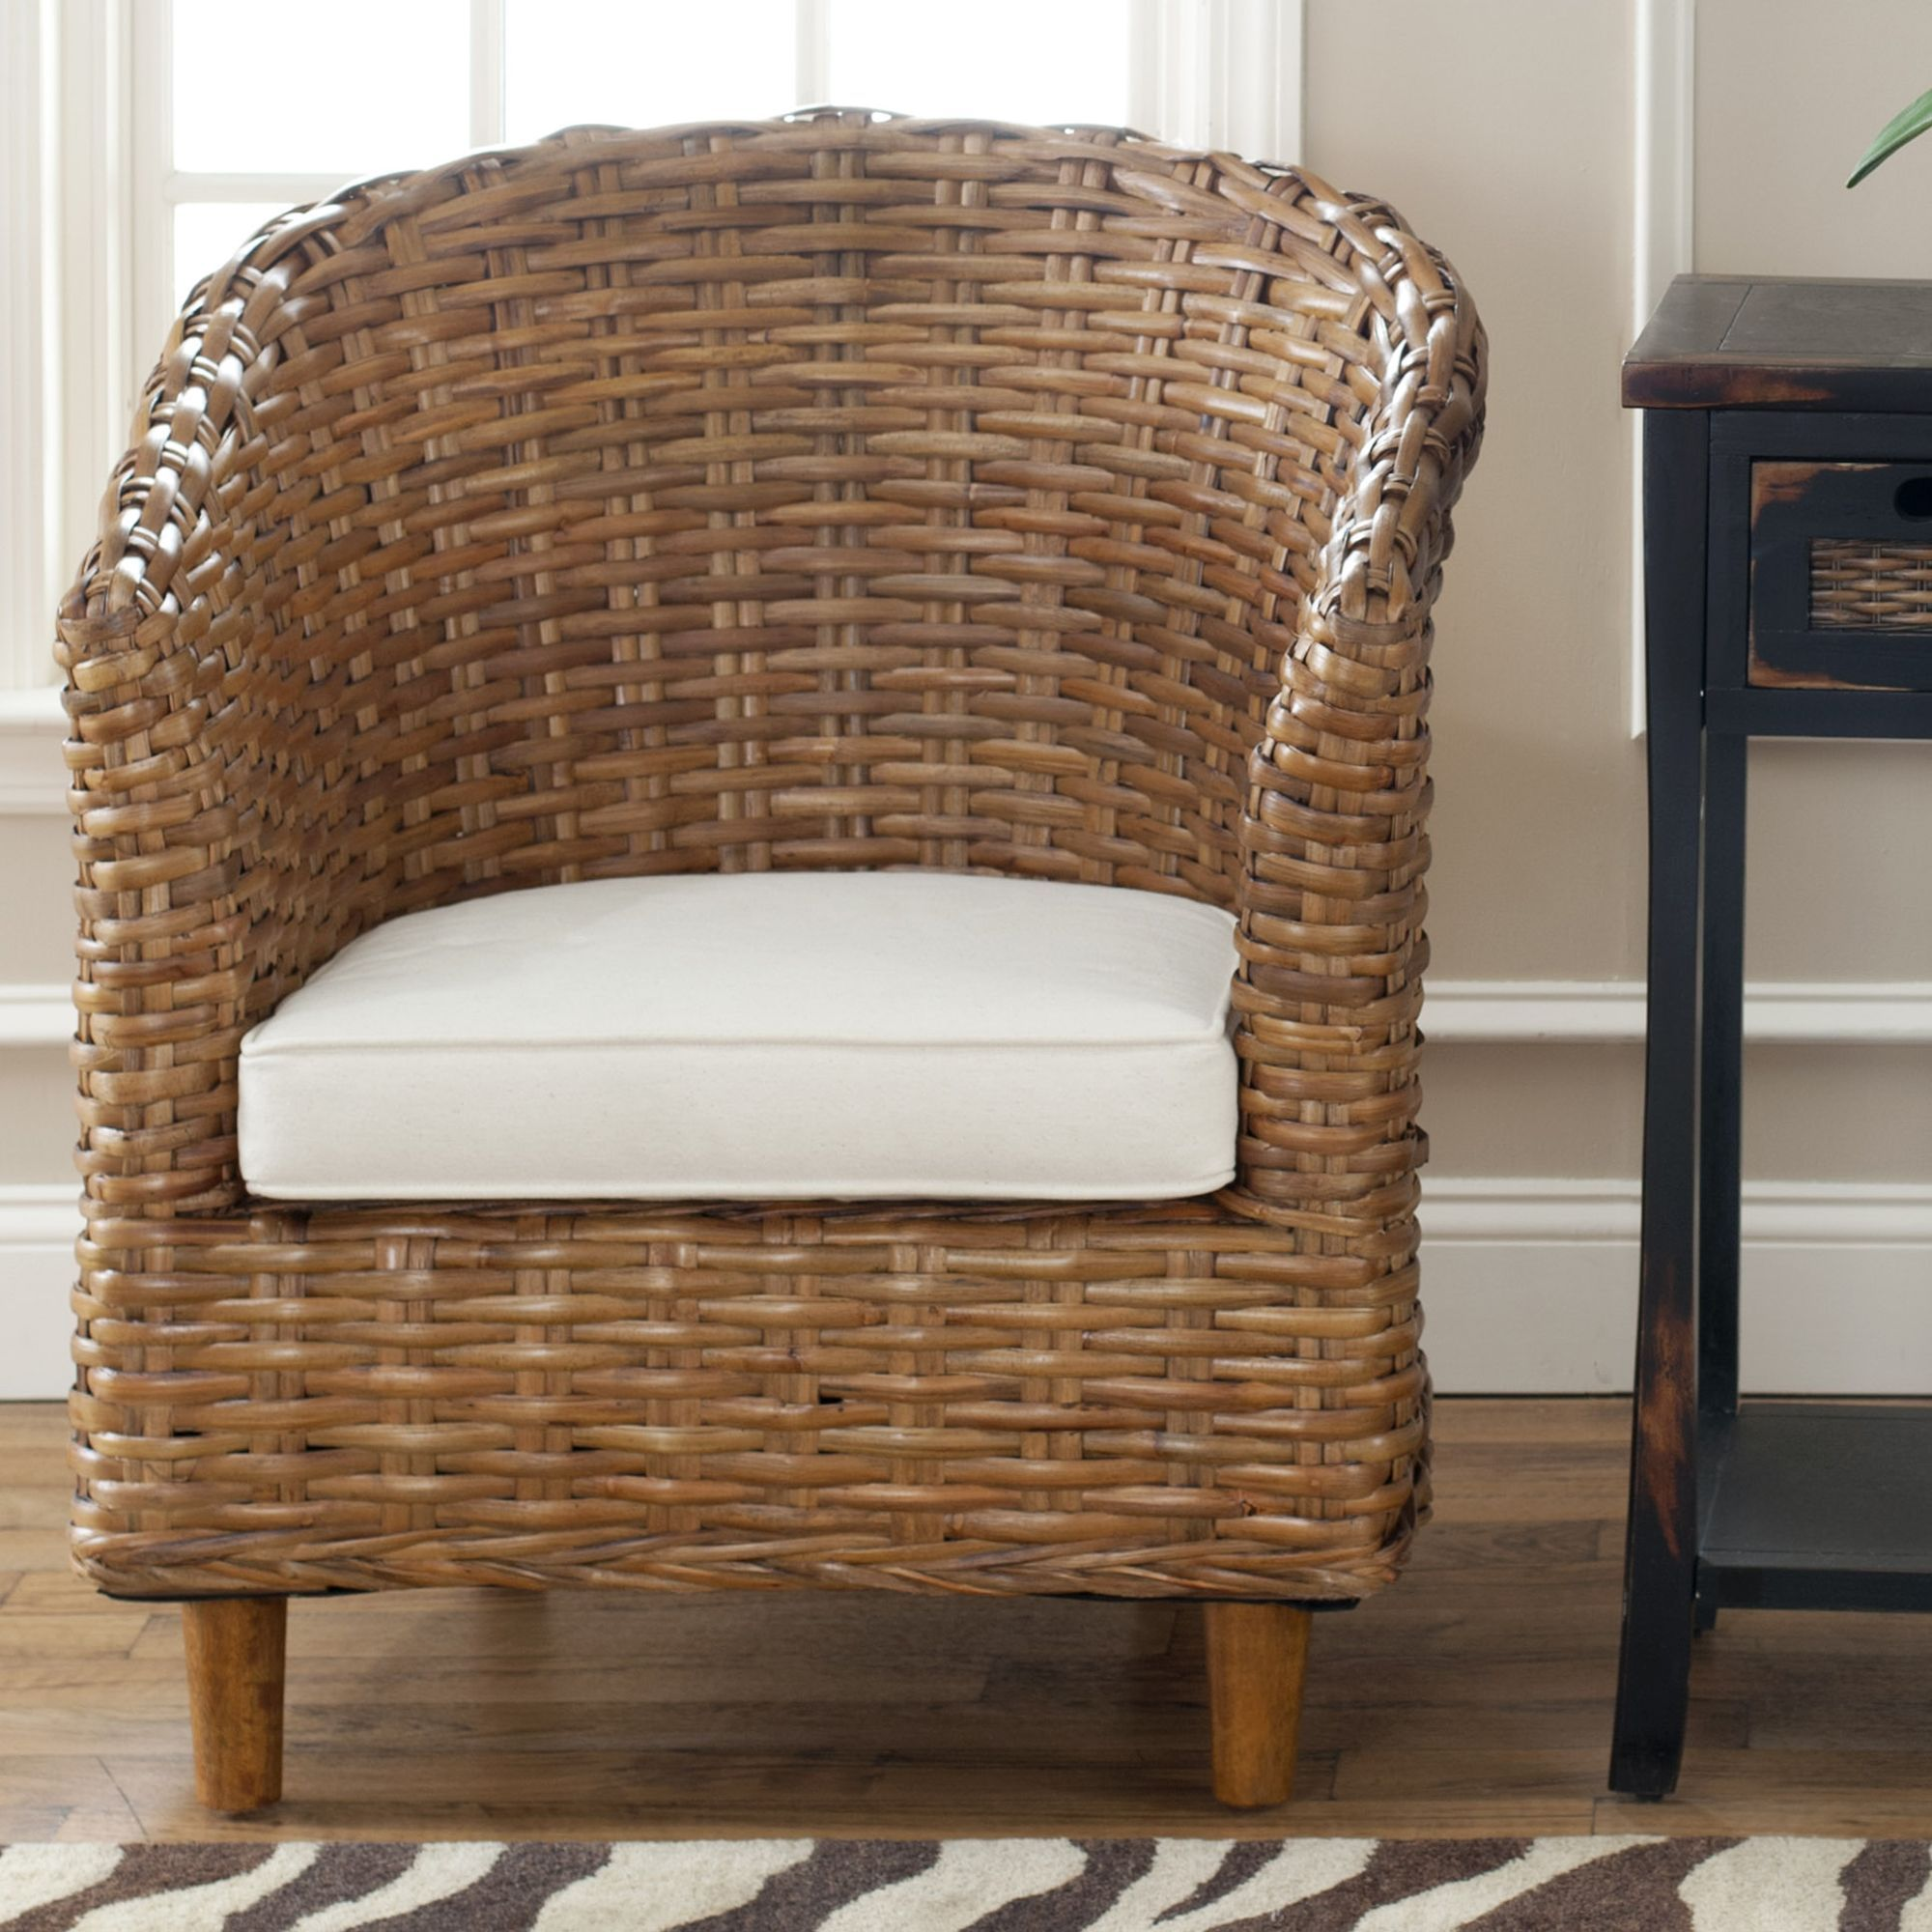 Safavieh St Thomas Indoor Wicker Honey Brown Barrel Chair